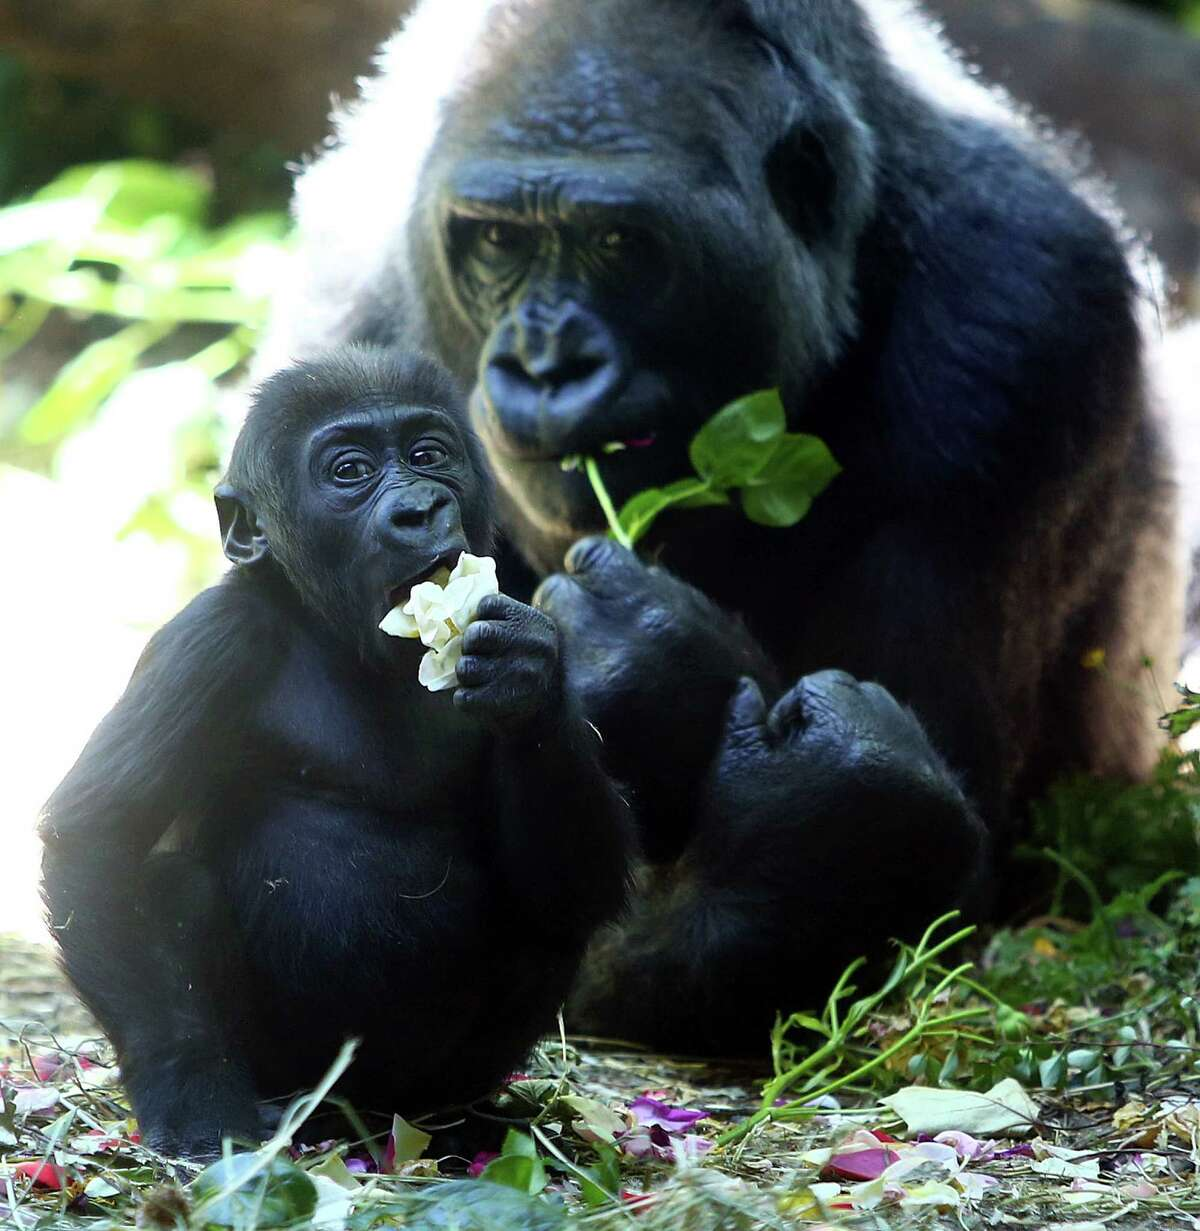 Six-month-old baby western lowland gorilla Yola eats a snack in her habitat at the Woodland Park Zoo with her mother, 20-year-old Nadiri, Monday, June 6, 2016. Yola will make her public debut Tuesday starting at 1:00pm.